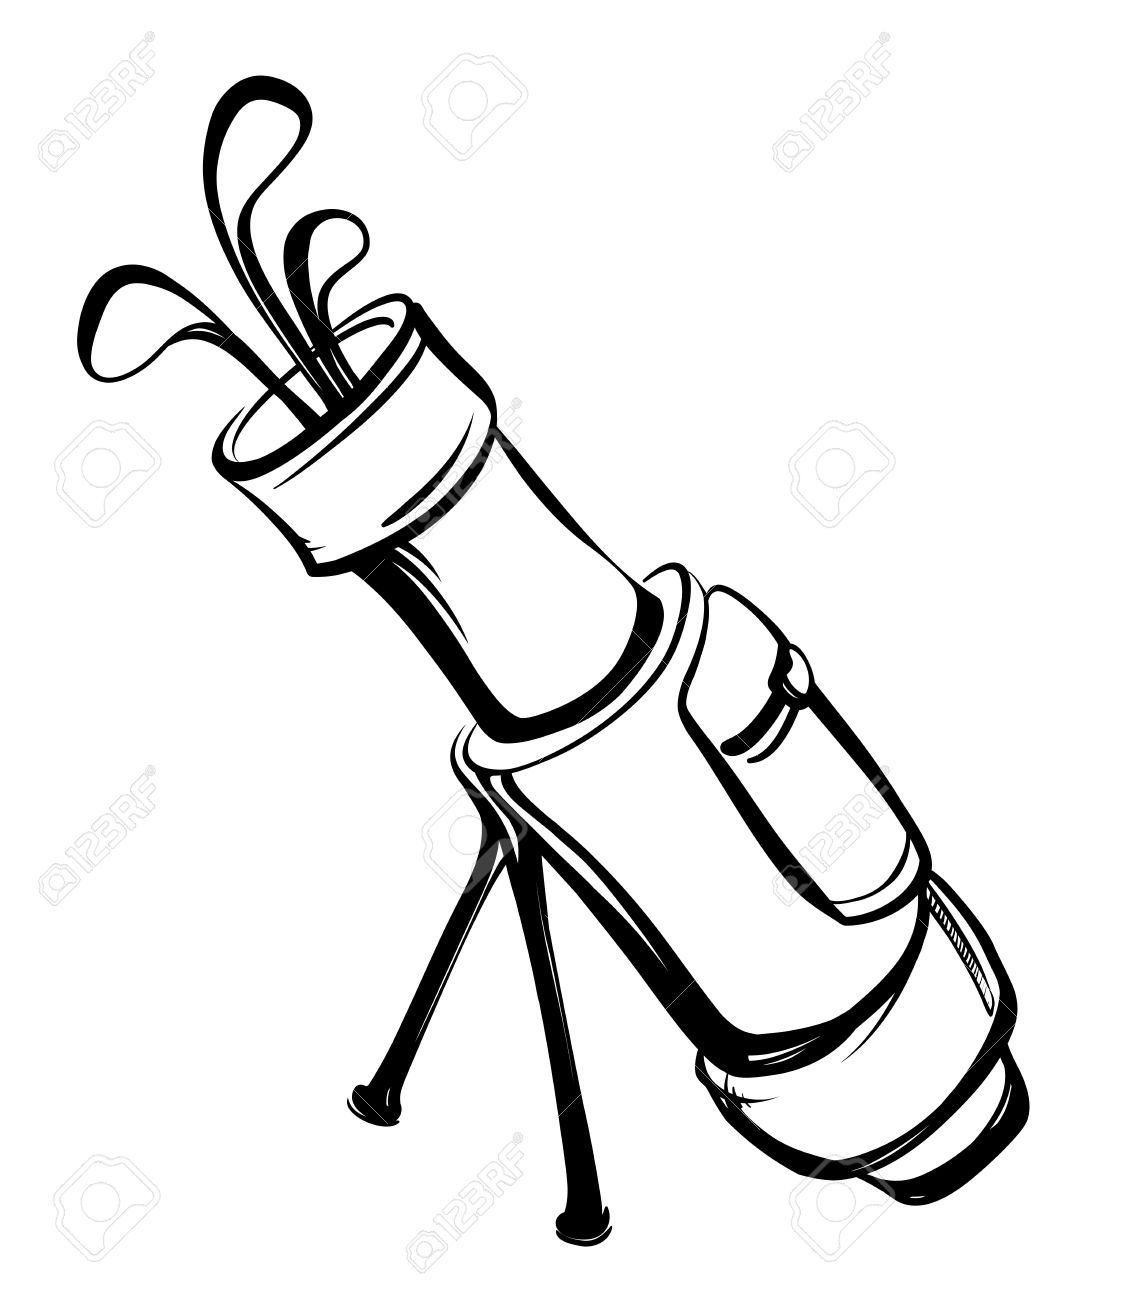 Golf Bag With Clubs In Black And White Style Thumbnail View On.